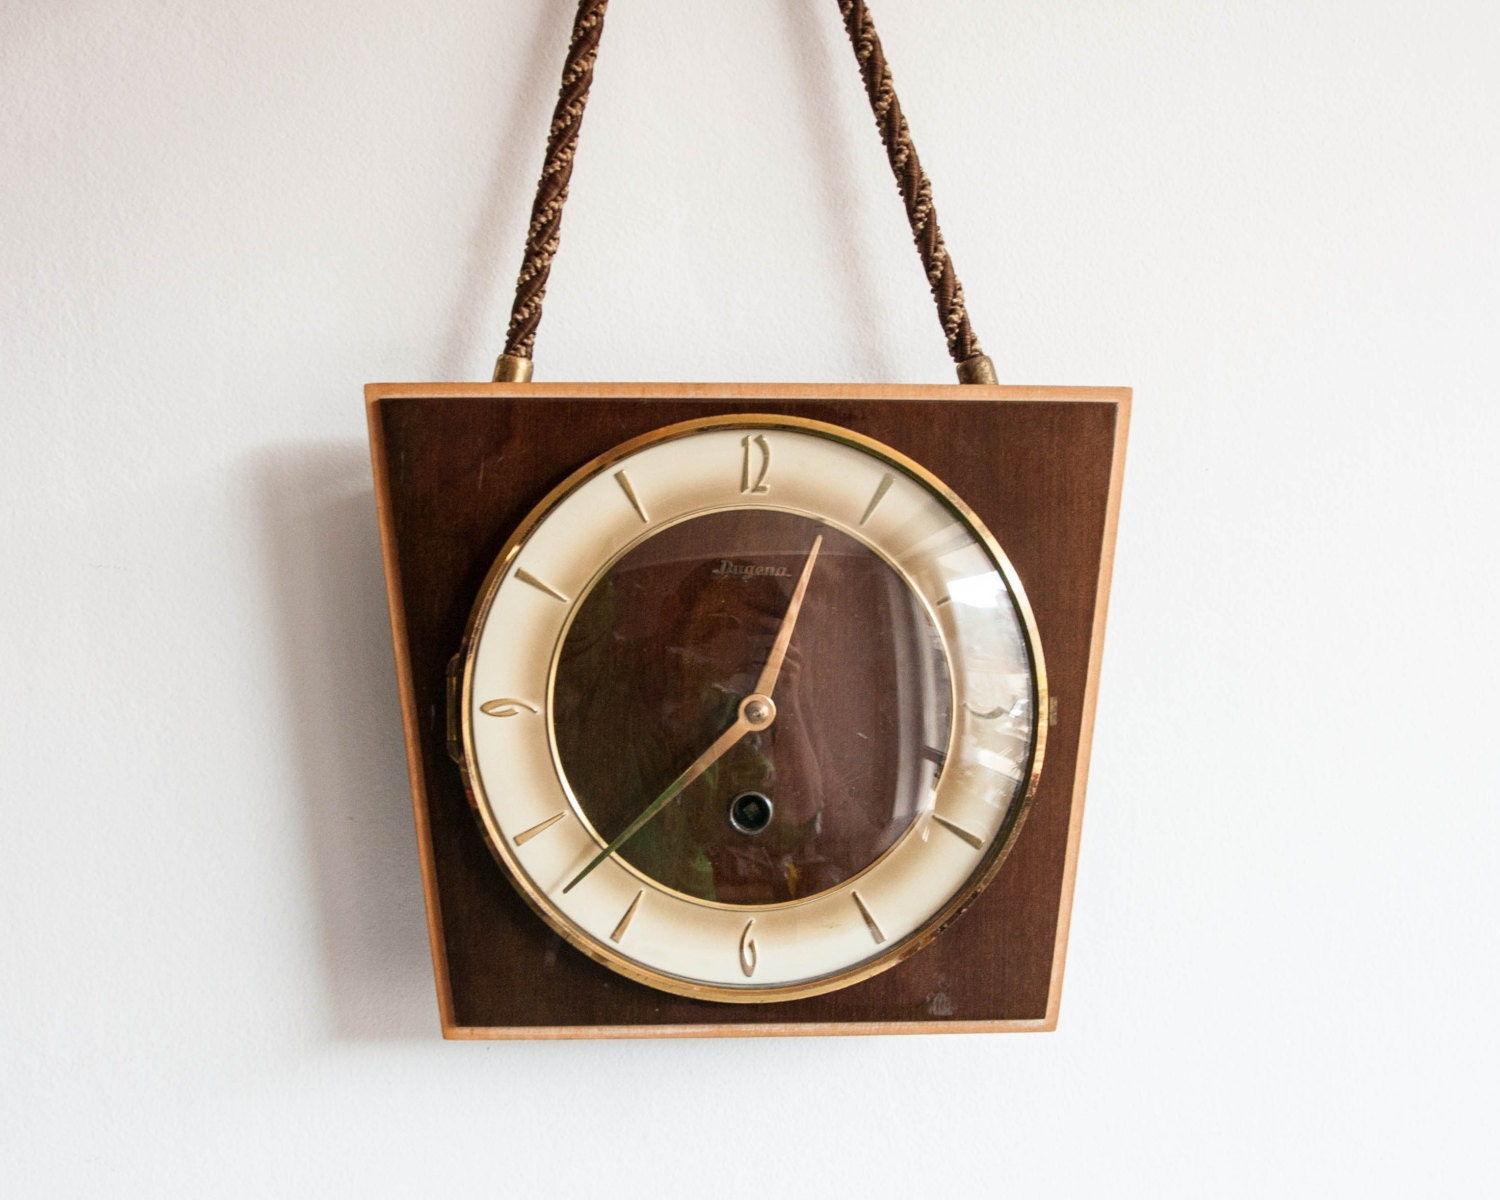 Vintage Wall Clock Office Decor Clock Kitchen Clock